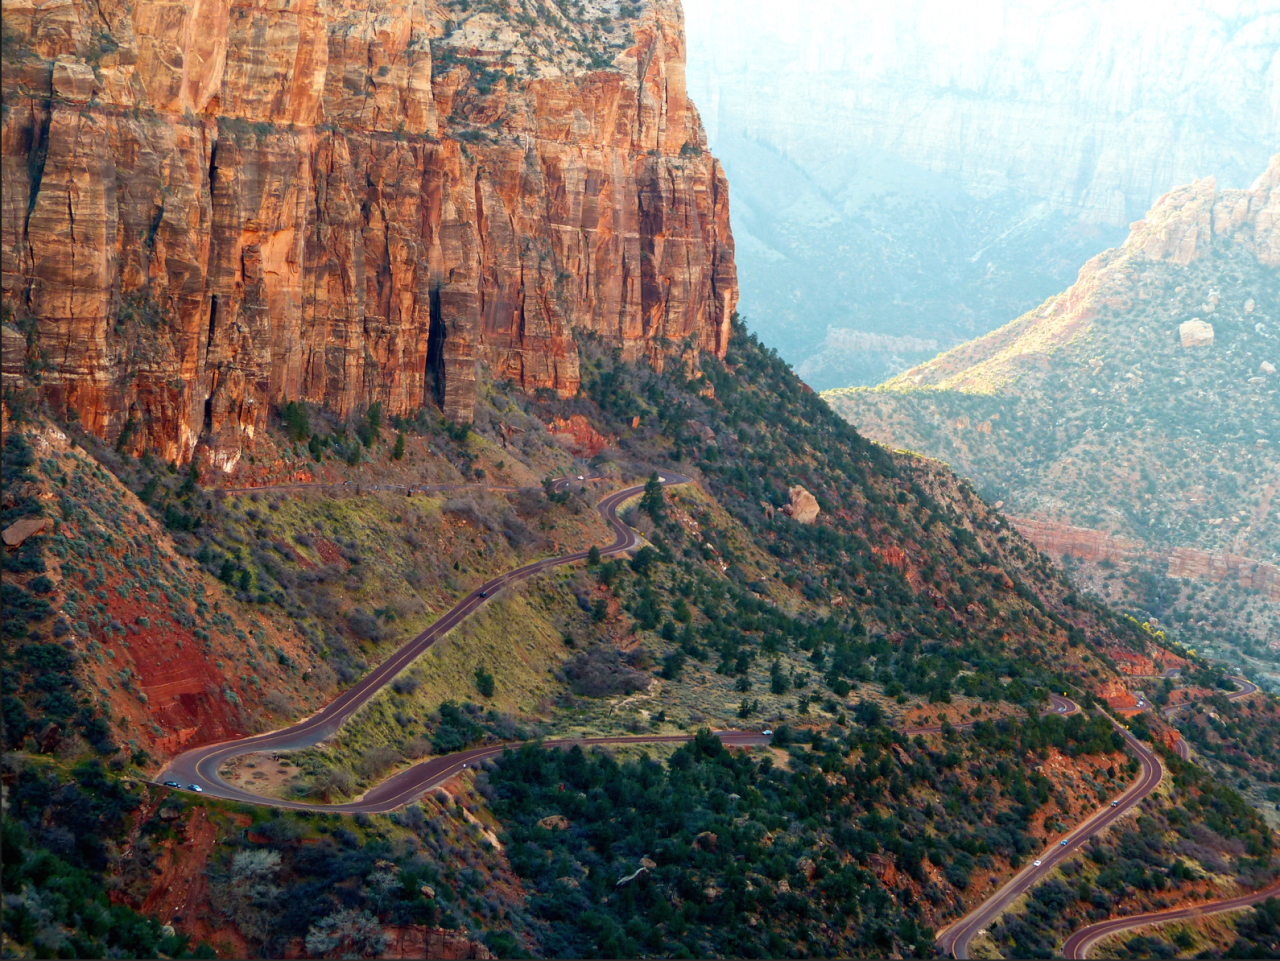 A picture from Zion National Park by Nicolas Evrard